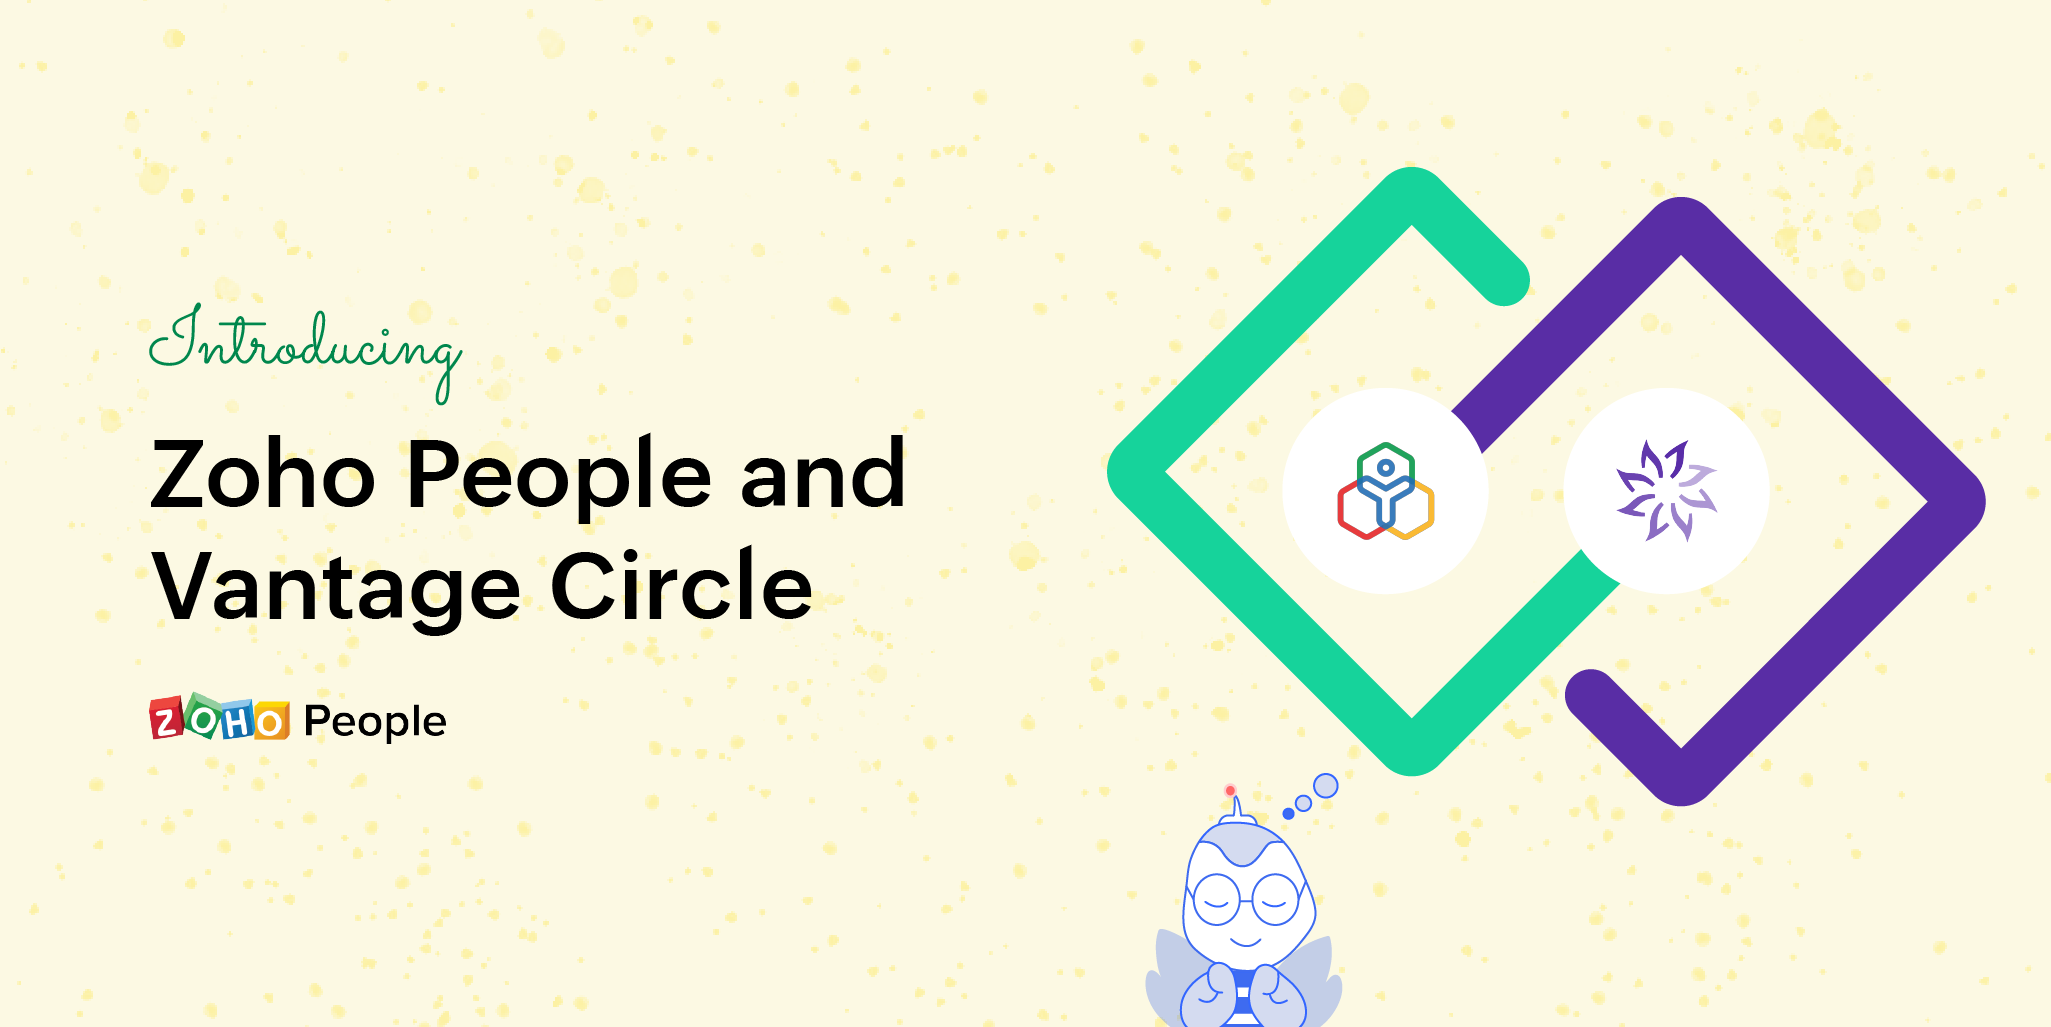 Introducing Vantage Circle for Zoho People: Motivate your employees with rewards